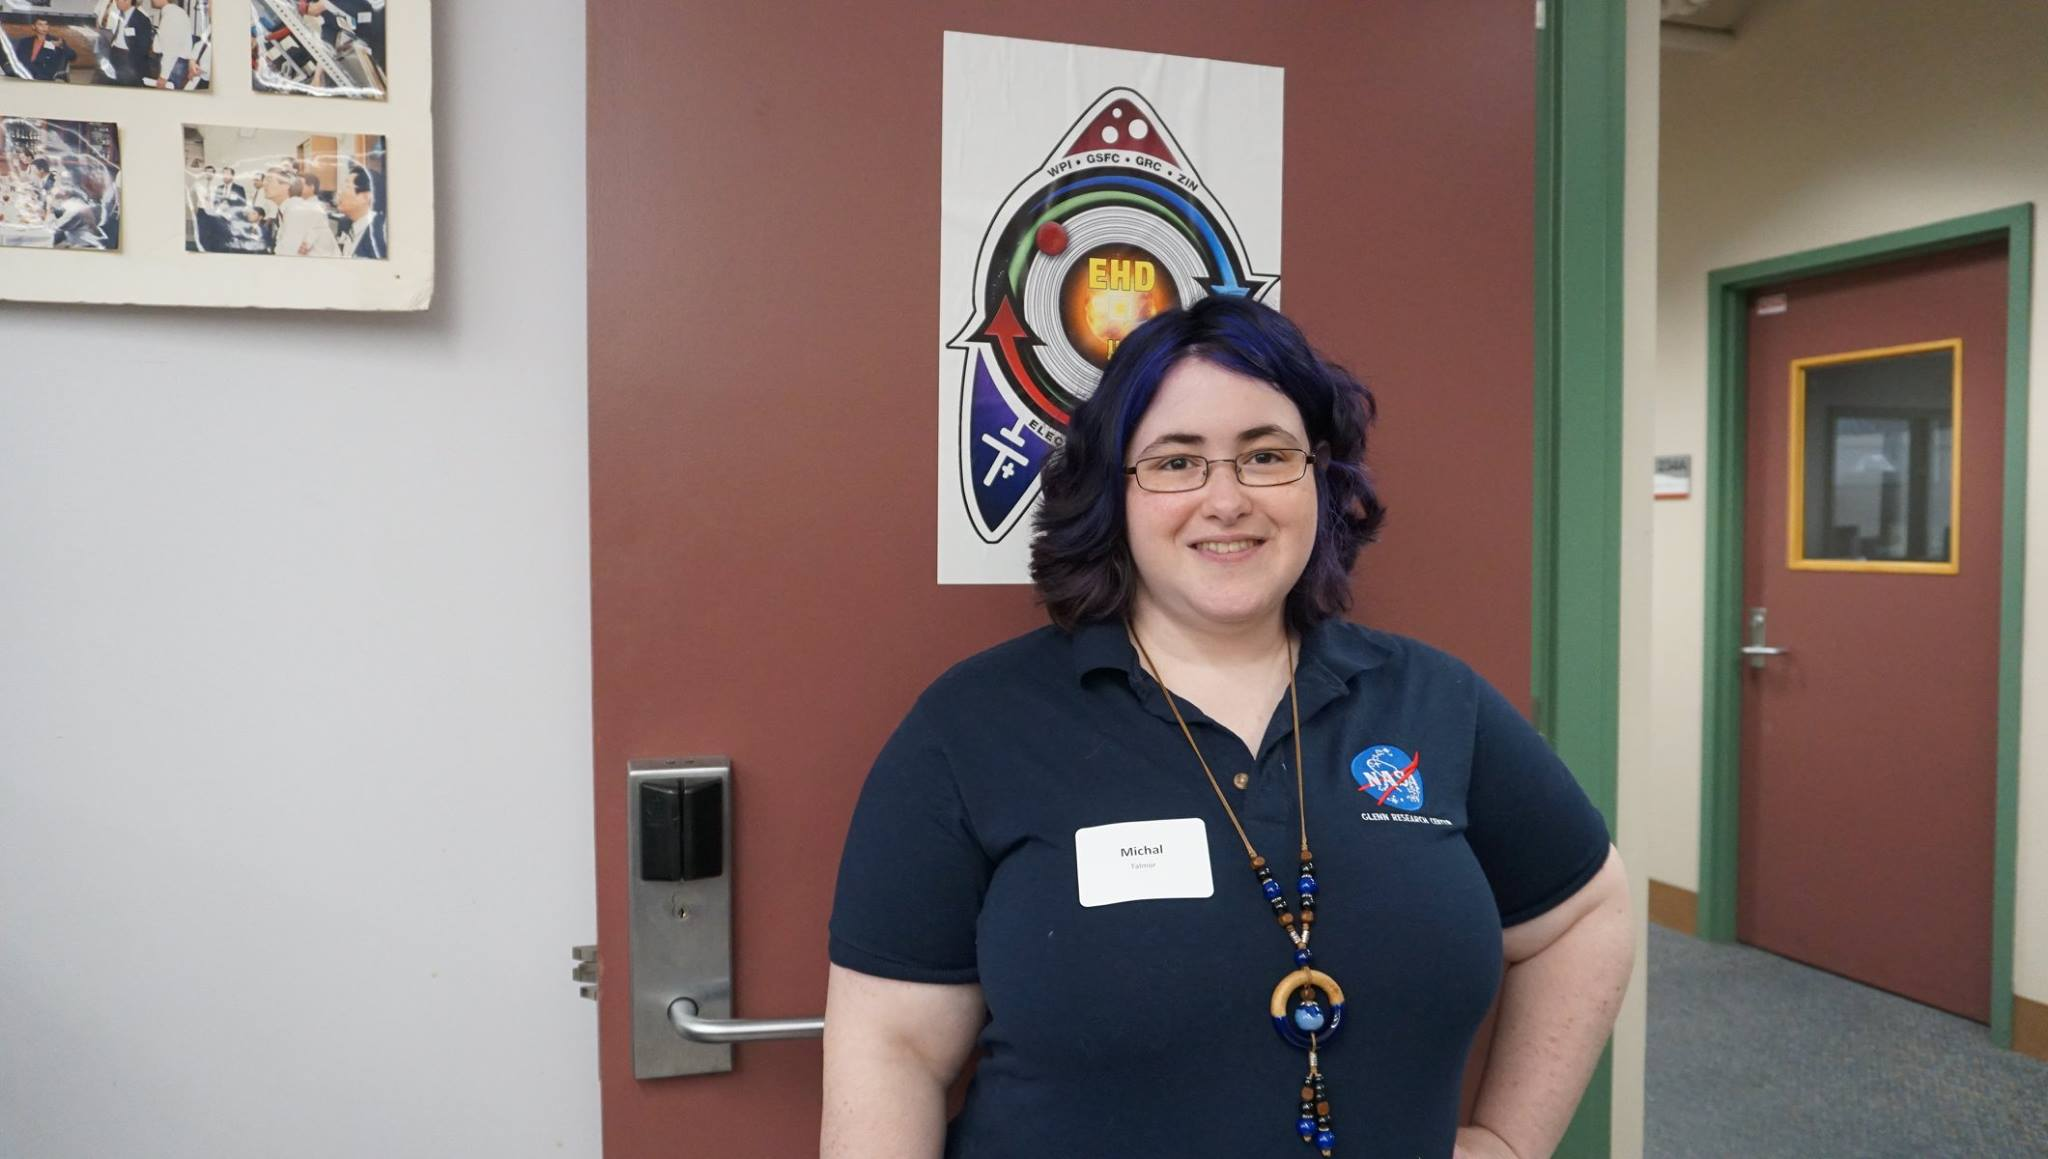 Michal Talmor smiles in a doorway. She's wearing a dark blue polo, lanyard, and glasses, is smiling, and has dark brown and purple hair.